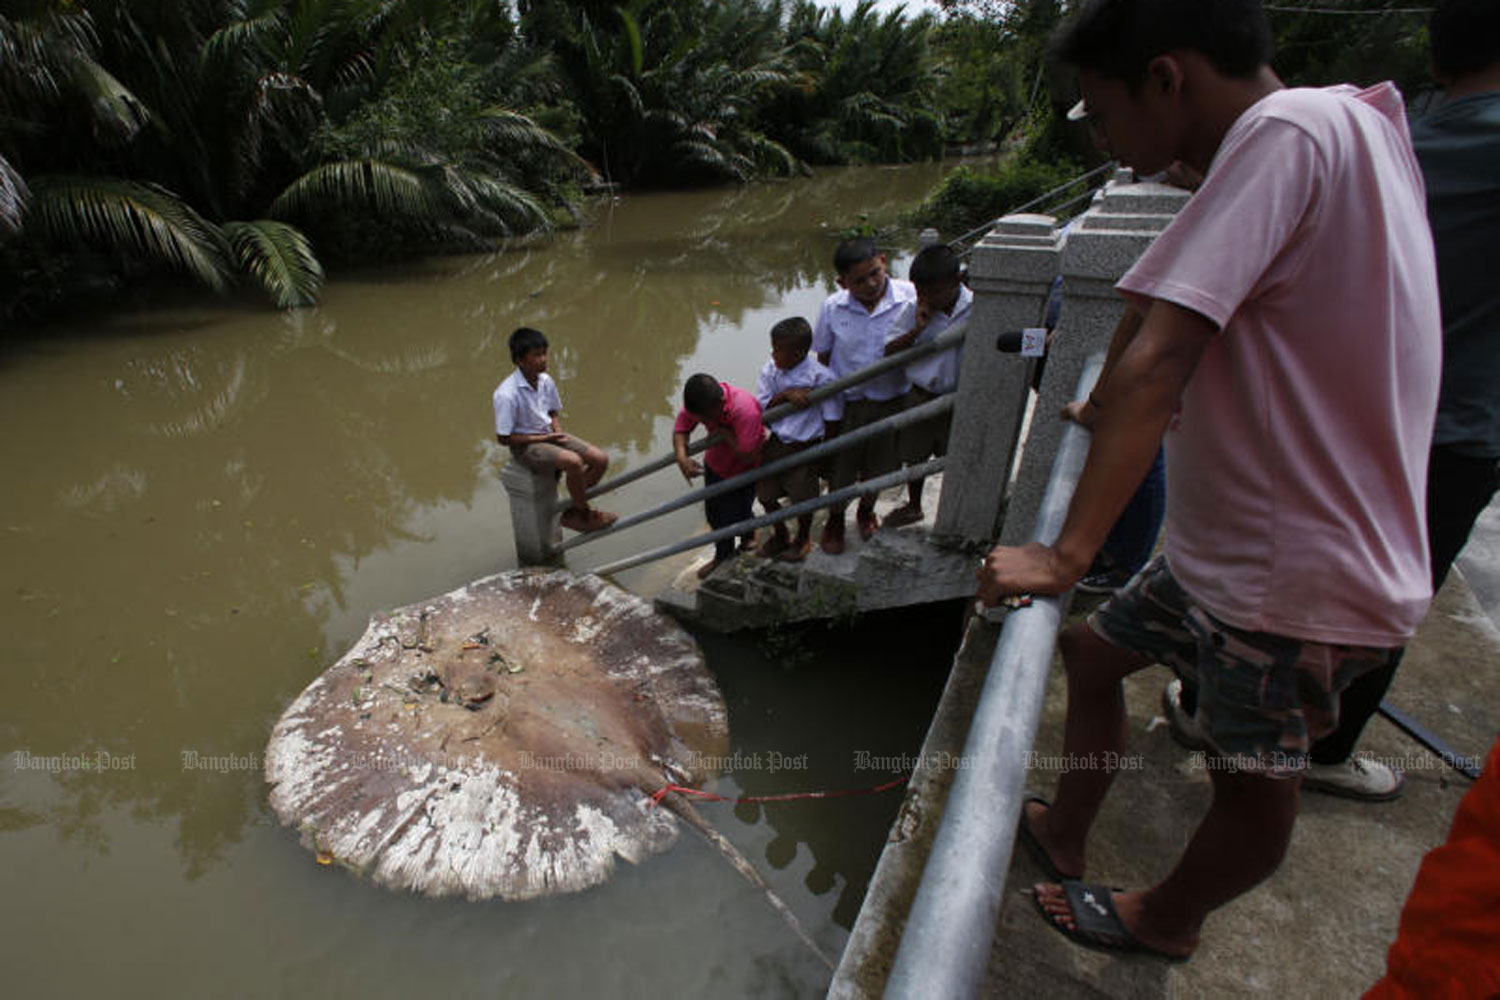 A dead giant stingray floats in front of Wat Khu Thamsathit in Khlong Bangkantaek, which is linked to the Mae Klong River, in Samut Songkhram's Muang district, on Oct 7, 2016. (Photo by Pattarapong Chatpattarasill)